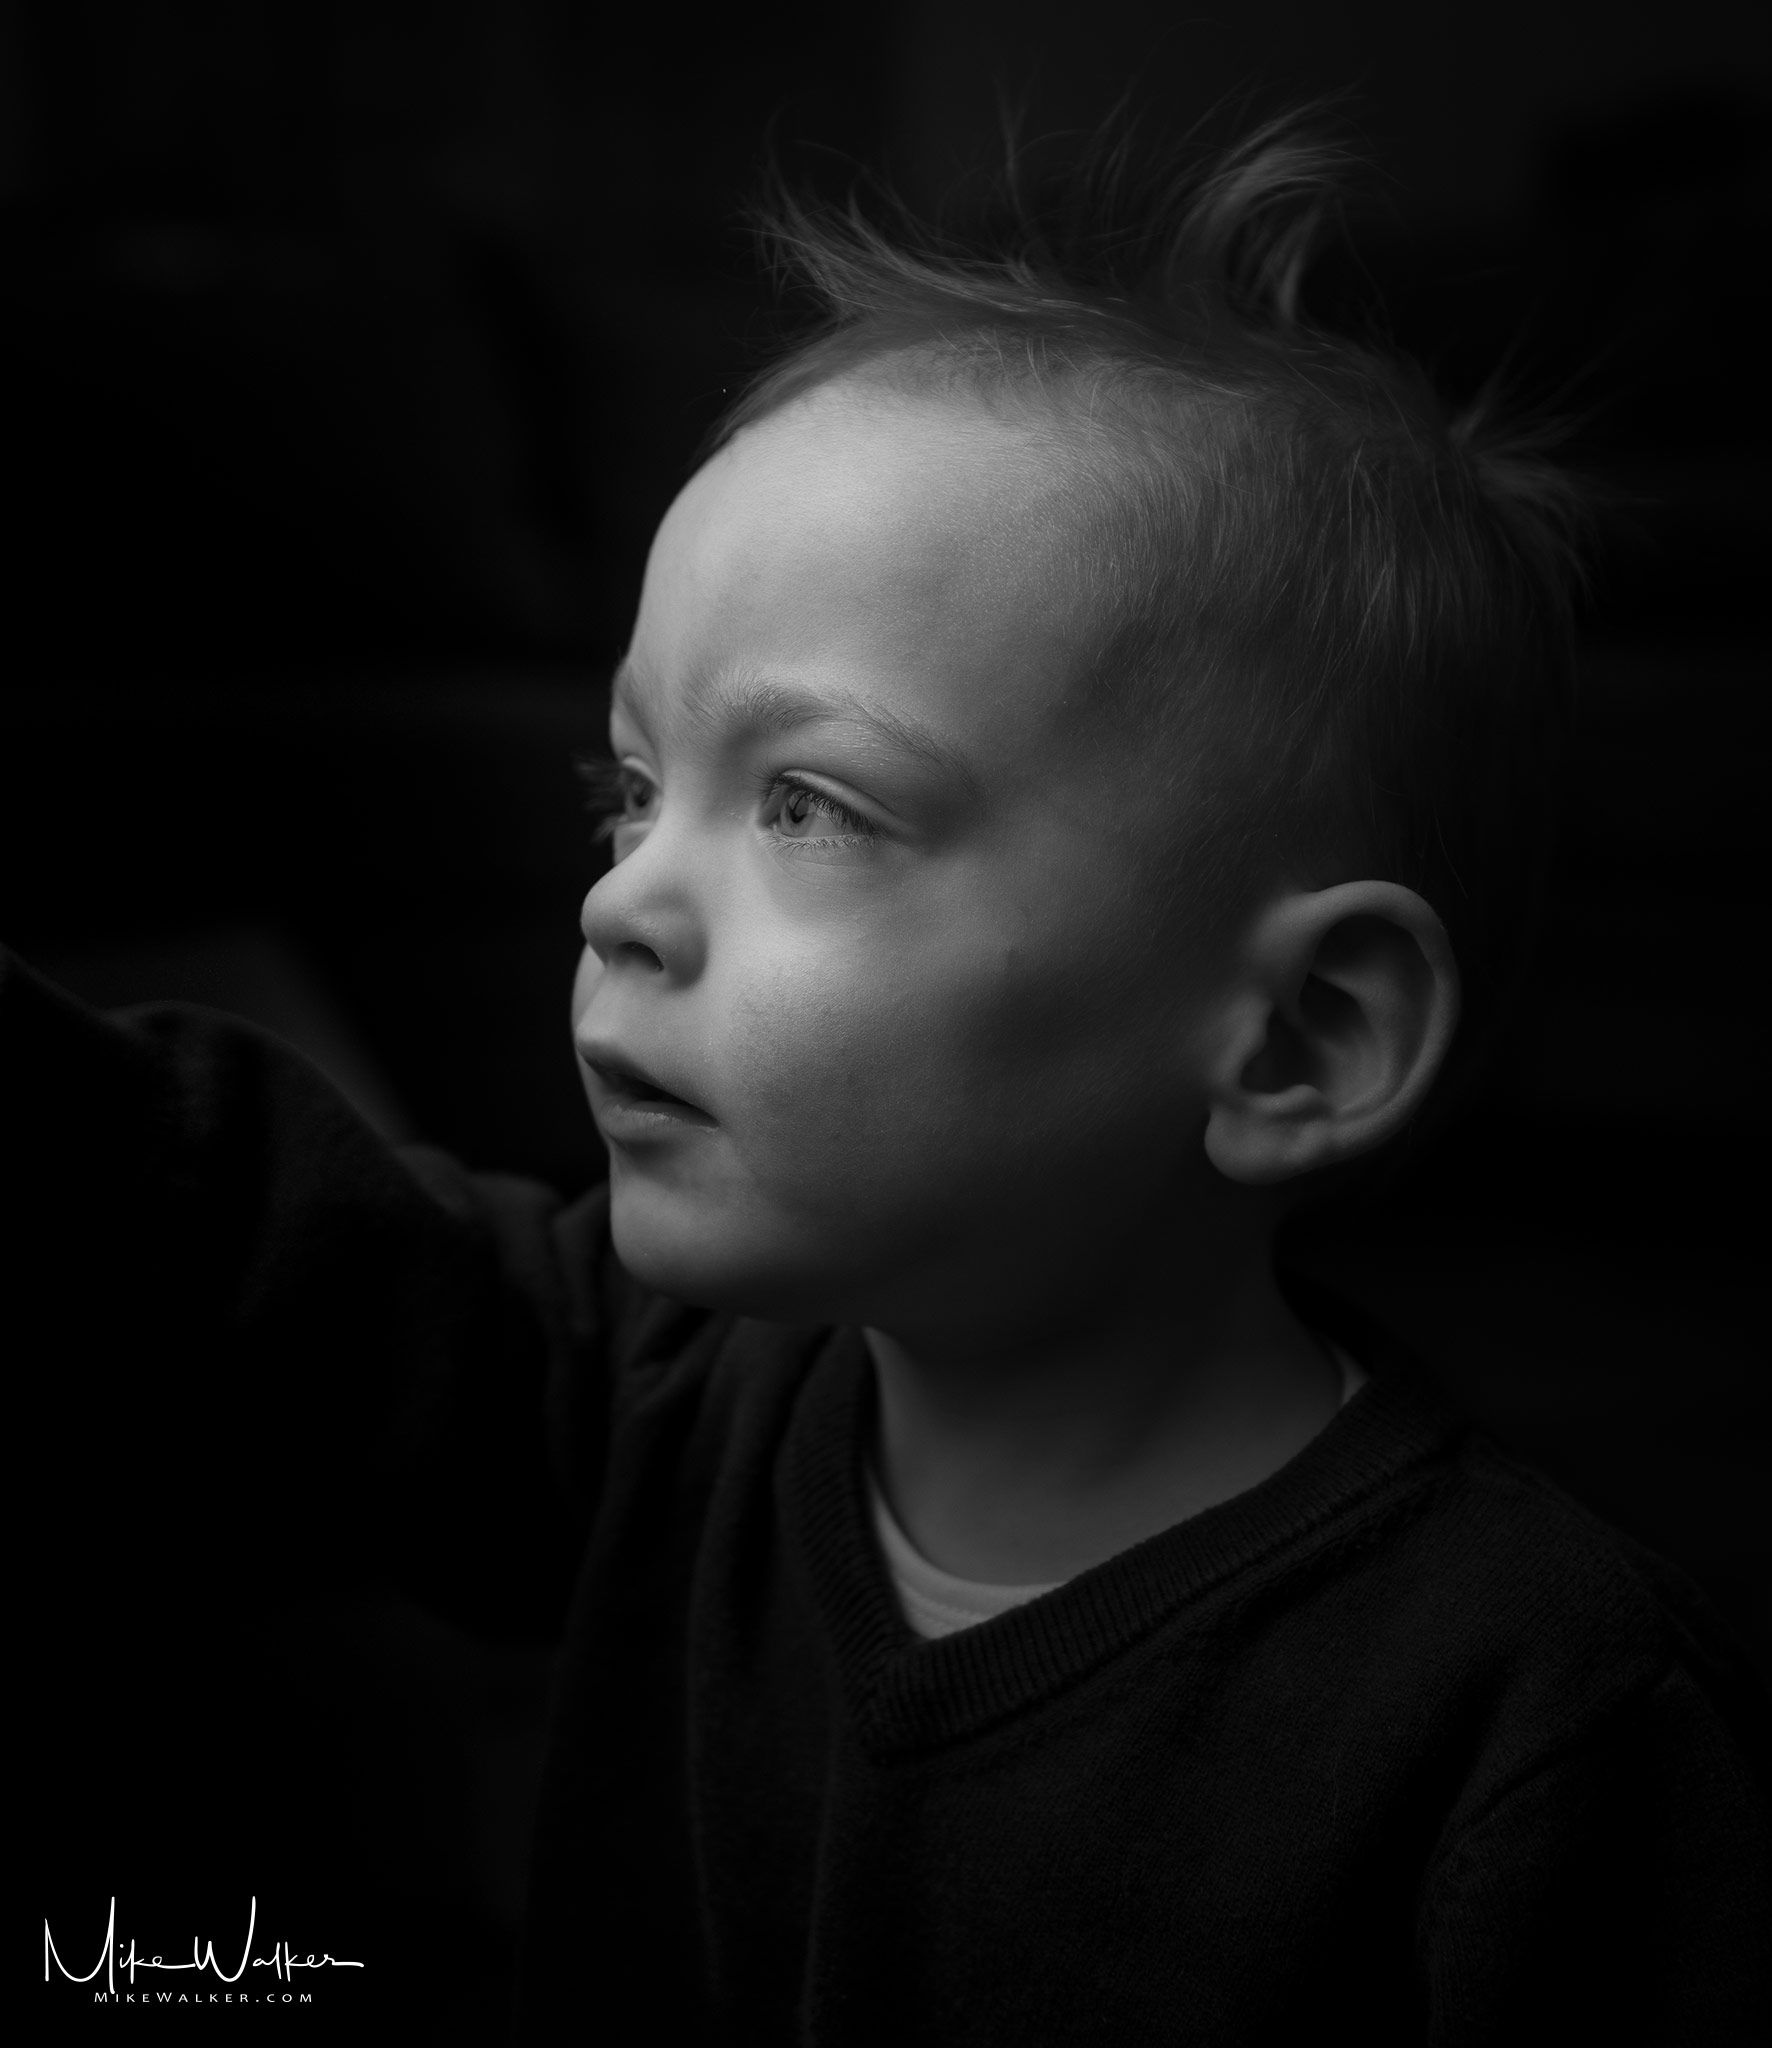 Young boy checking out some lighting. Family photography by Mike Walker.